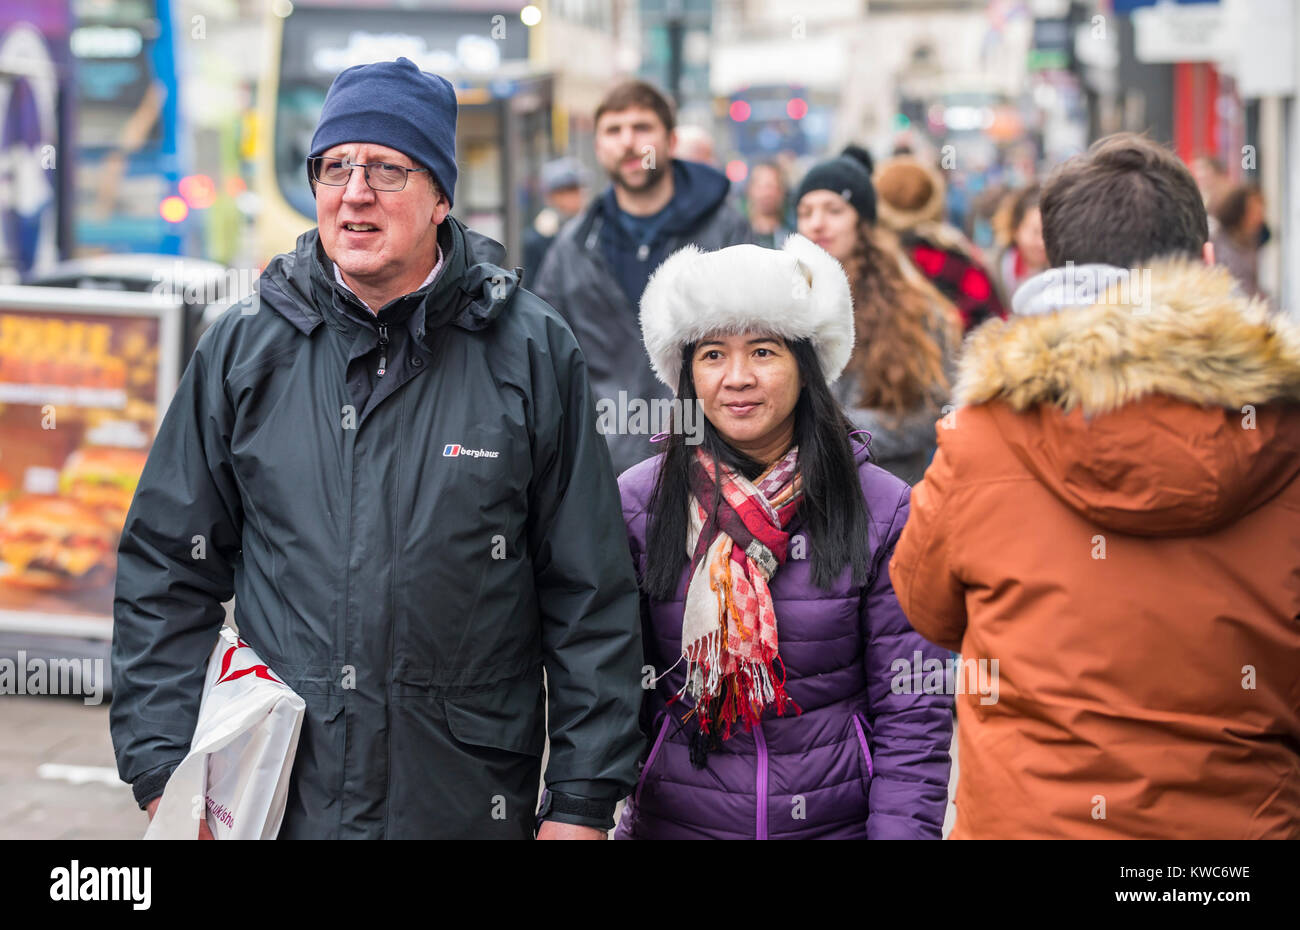 A couple from different ethnic backgrounds walking holding hands in England, UK. - Stock Image